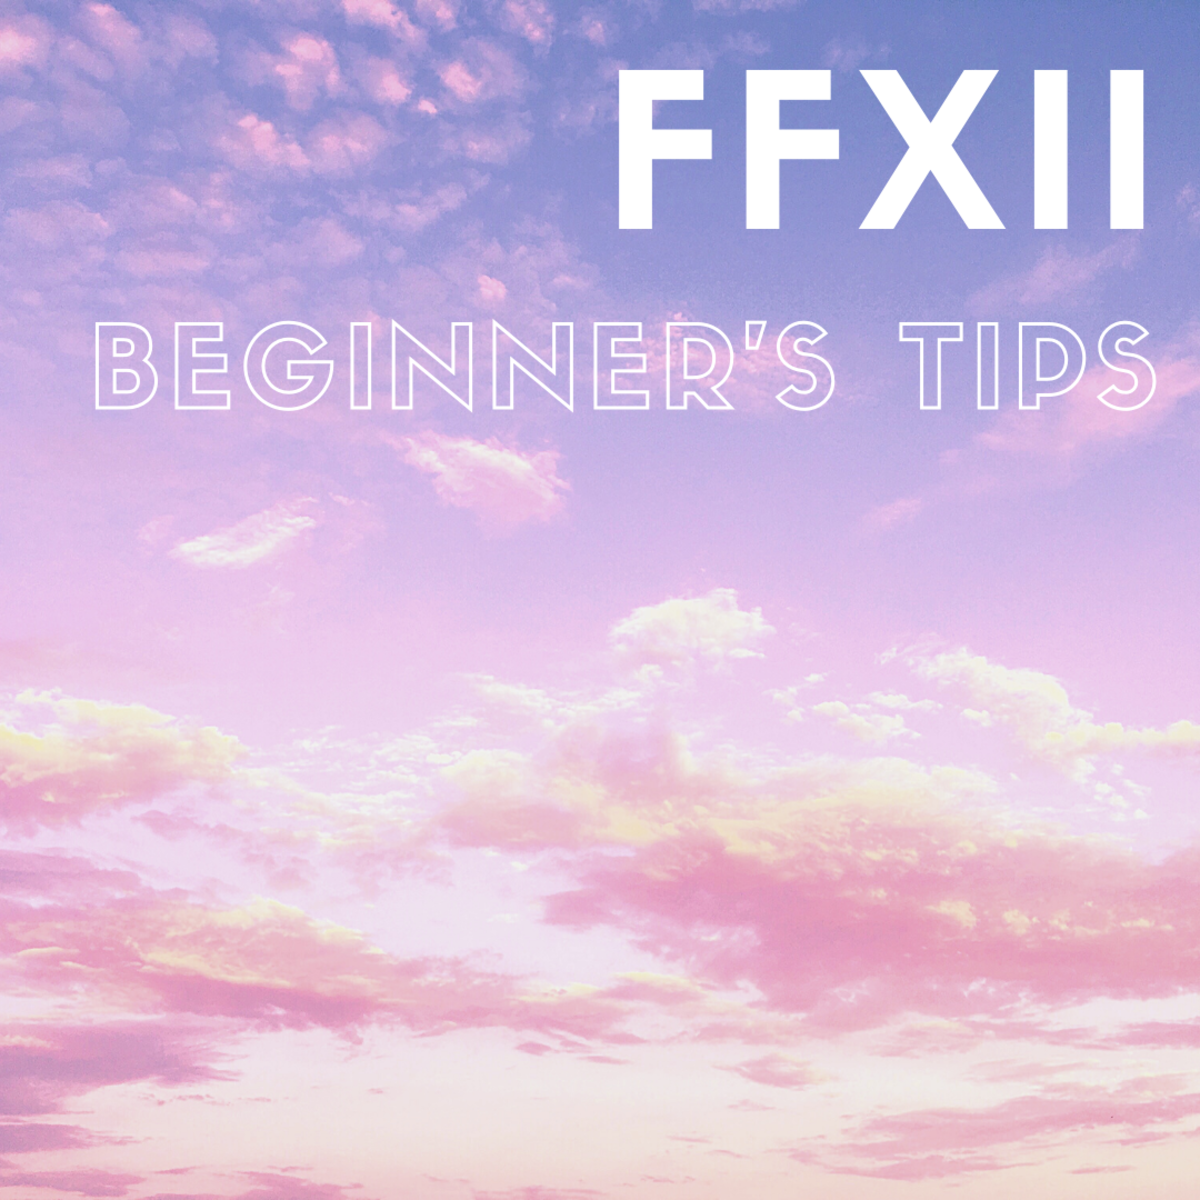 """Read on for a helpful beginner's guide to """"FFXII""""!"""